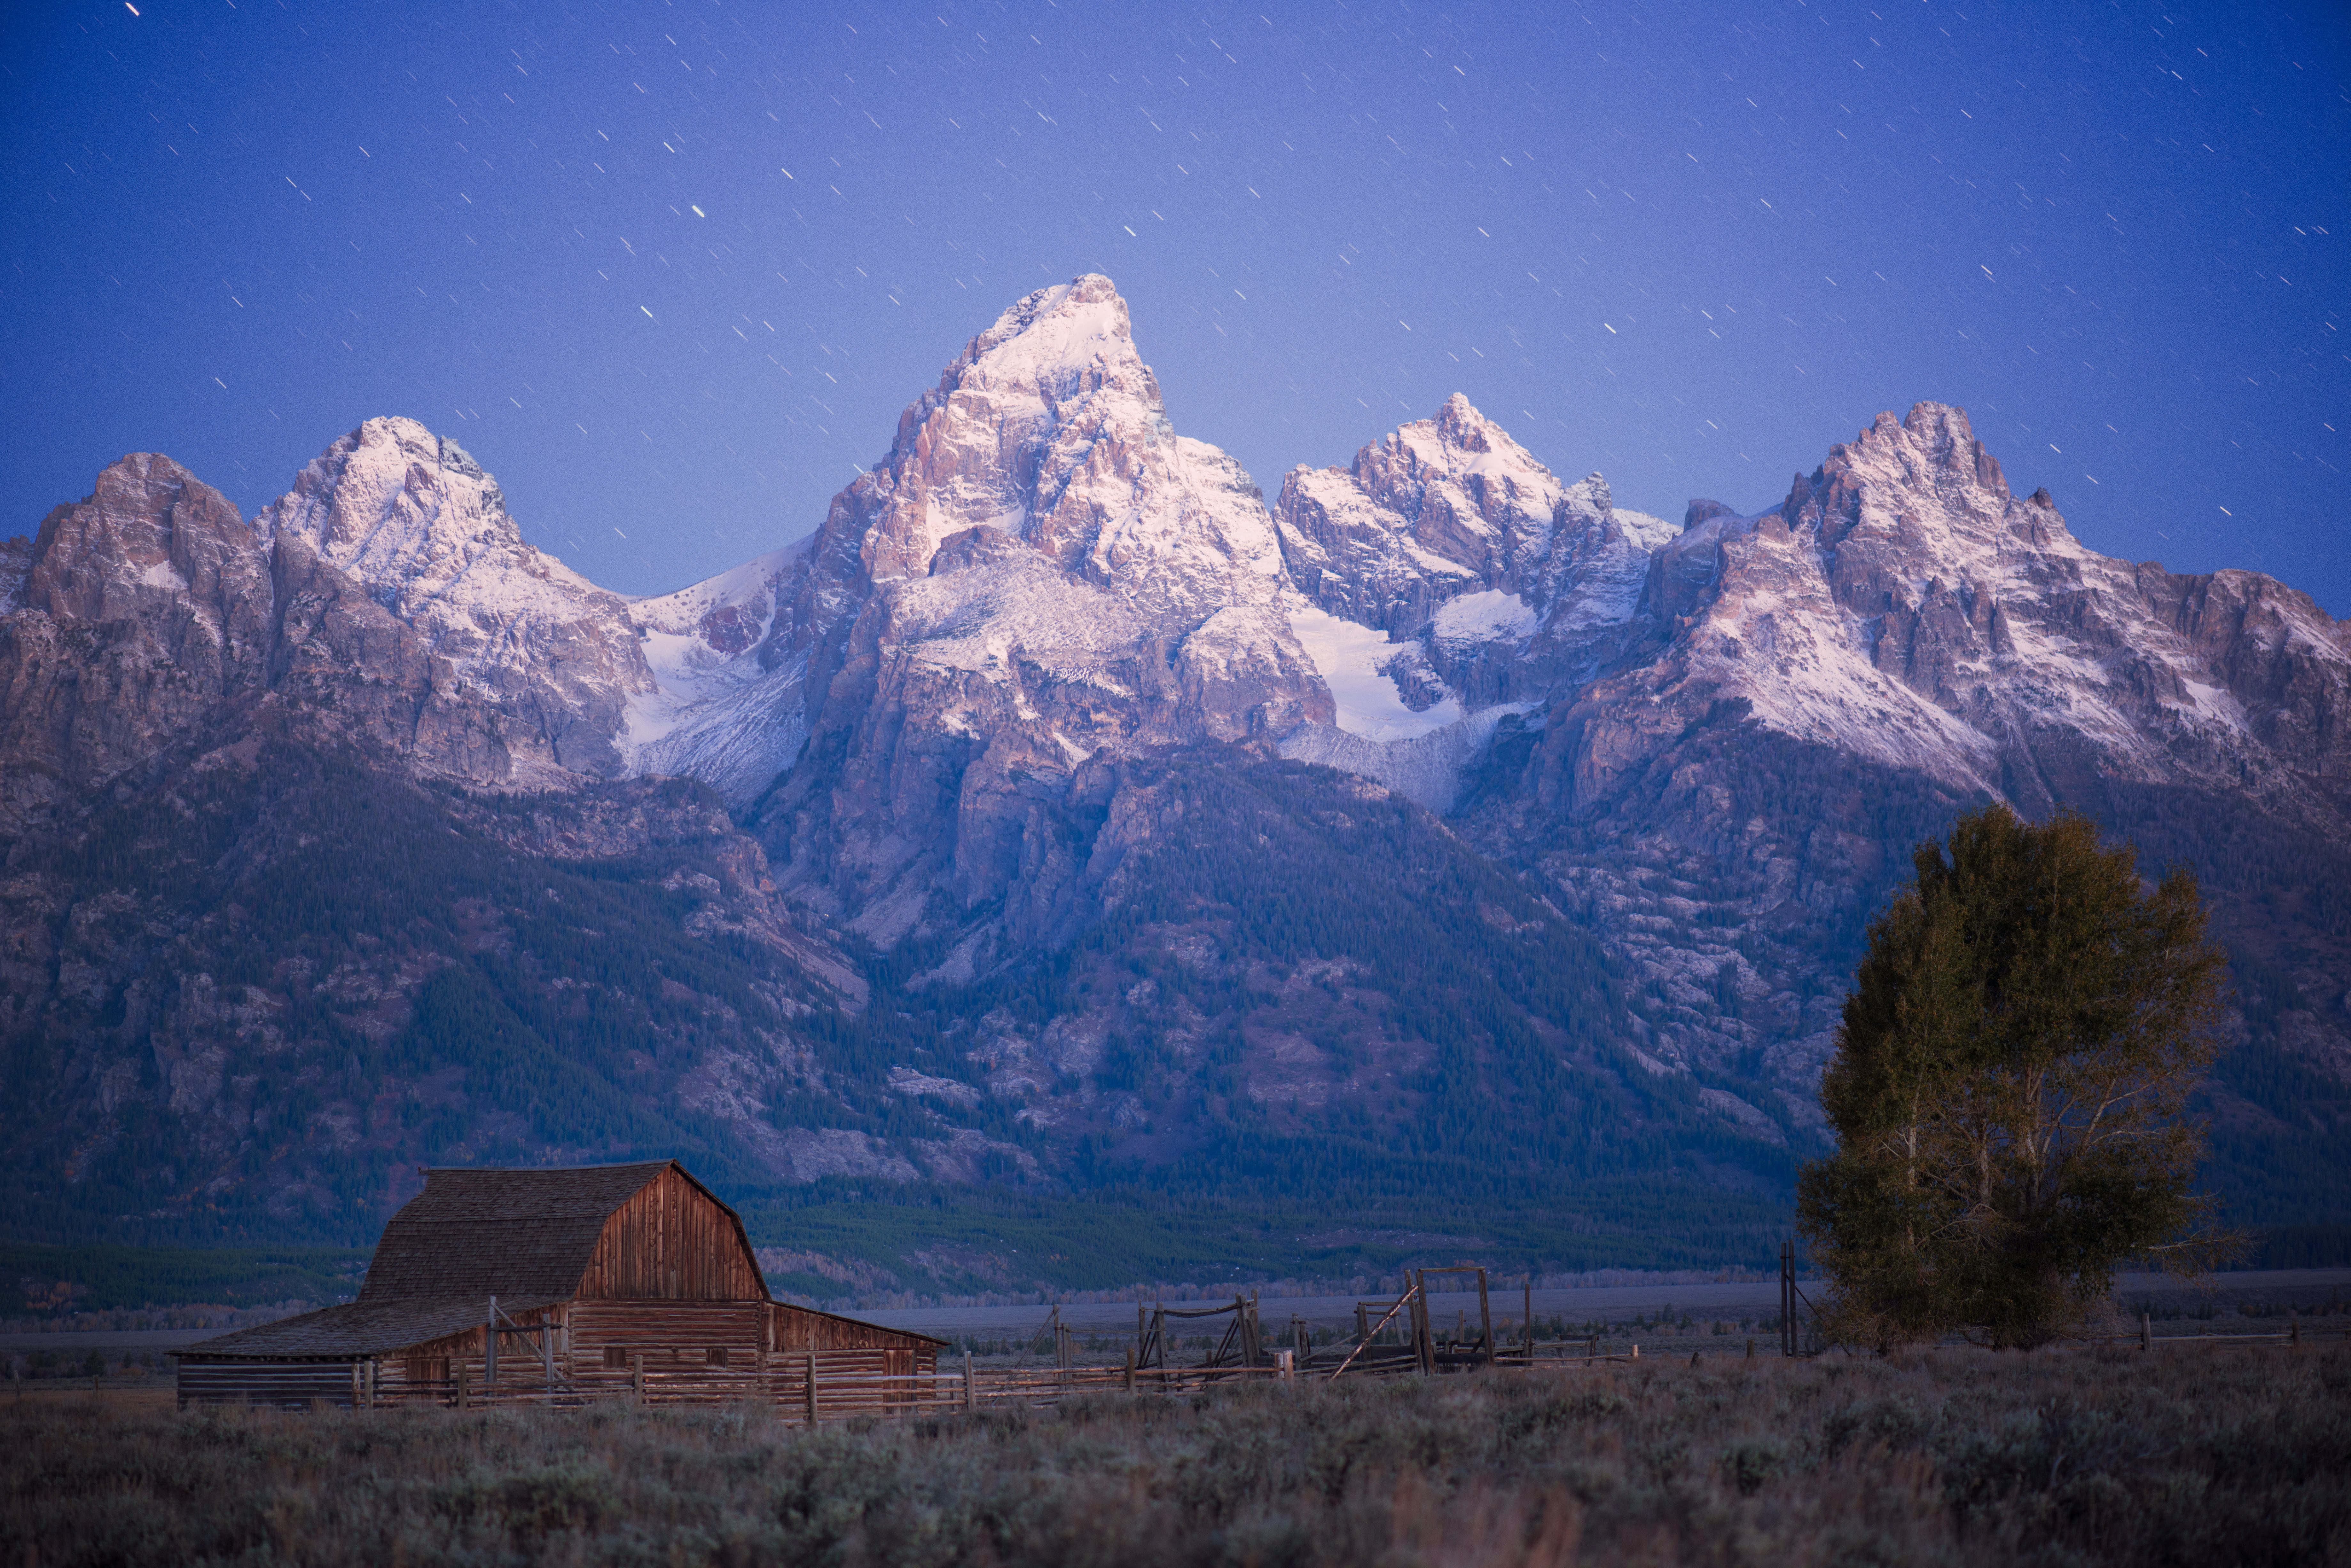 Deep blue twilight skies with fading stars appear above rugged Grand Teton and the famous John Moulton Barn in Grand Teton National Park, Wyoming.